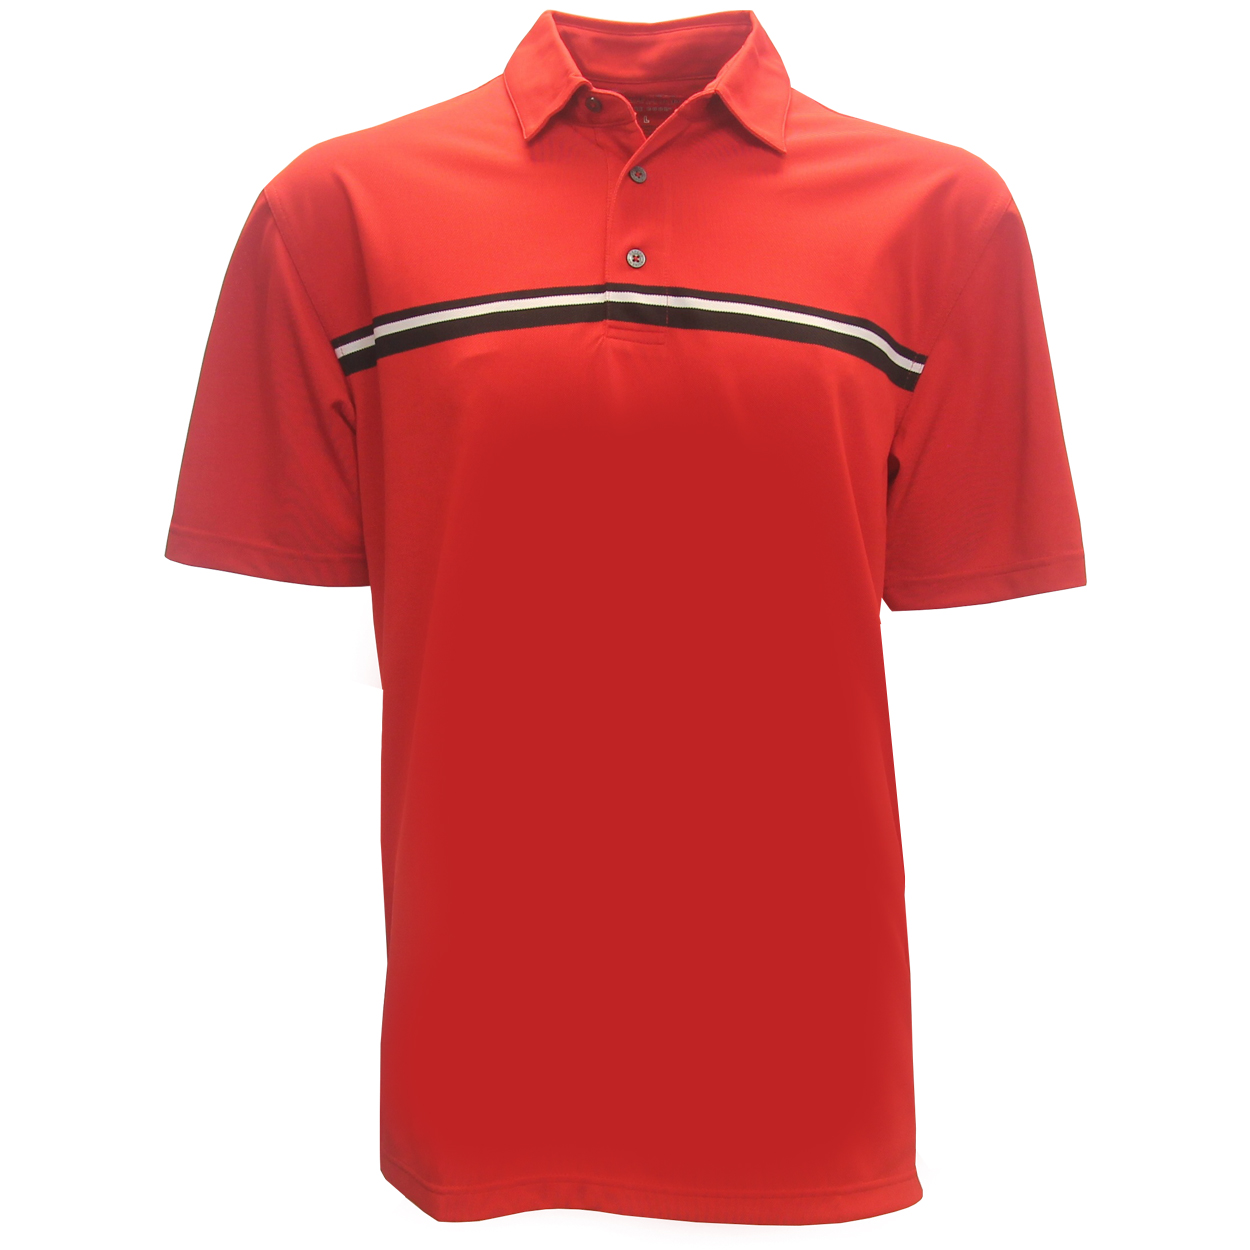 Oxpolo 1004602 red front 0718